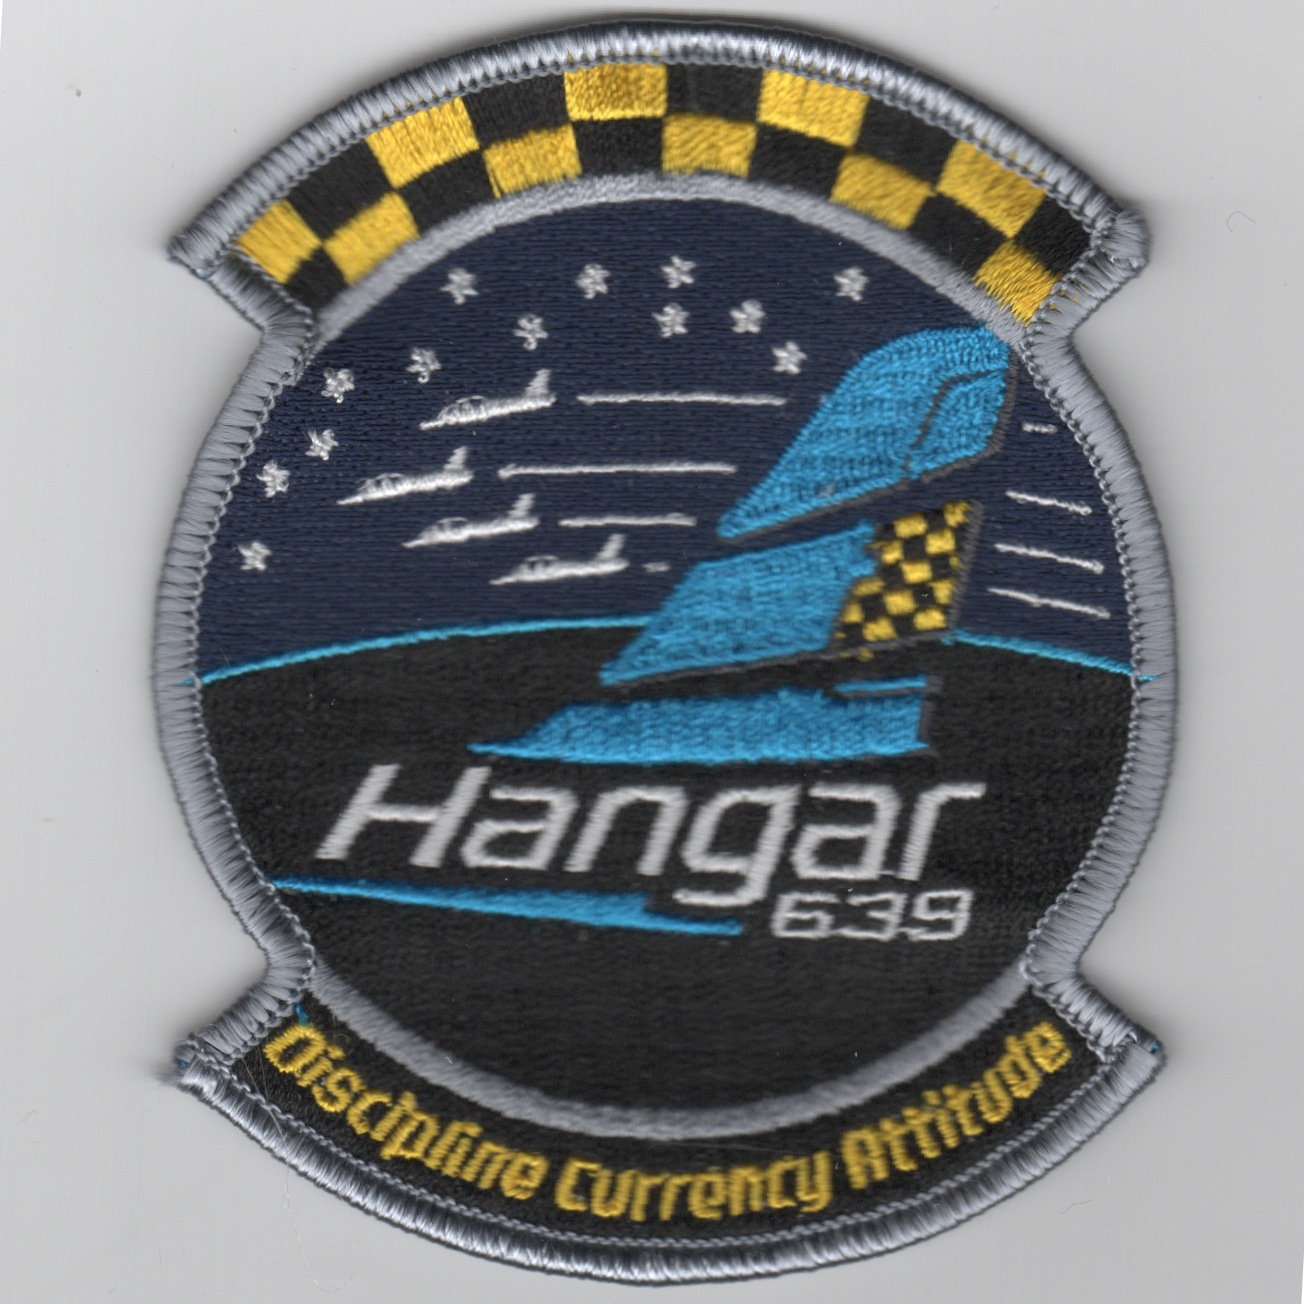 Pax River 'Hangar 639' Patch